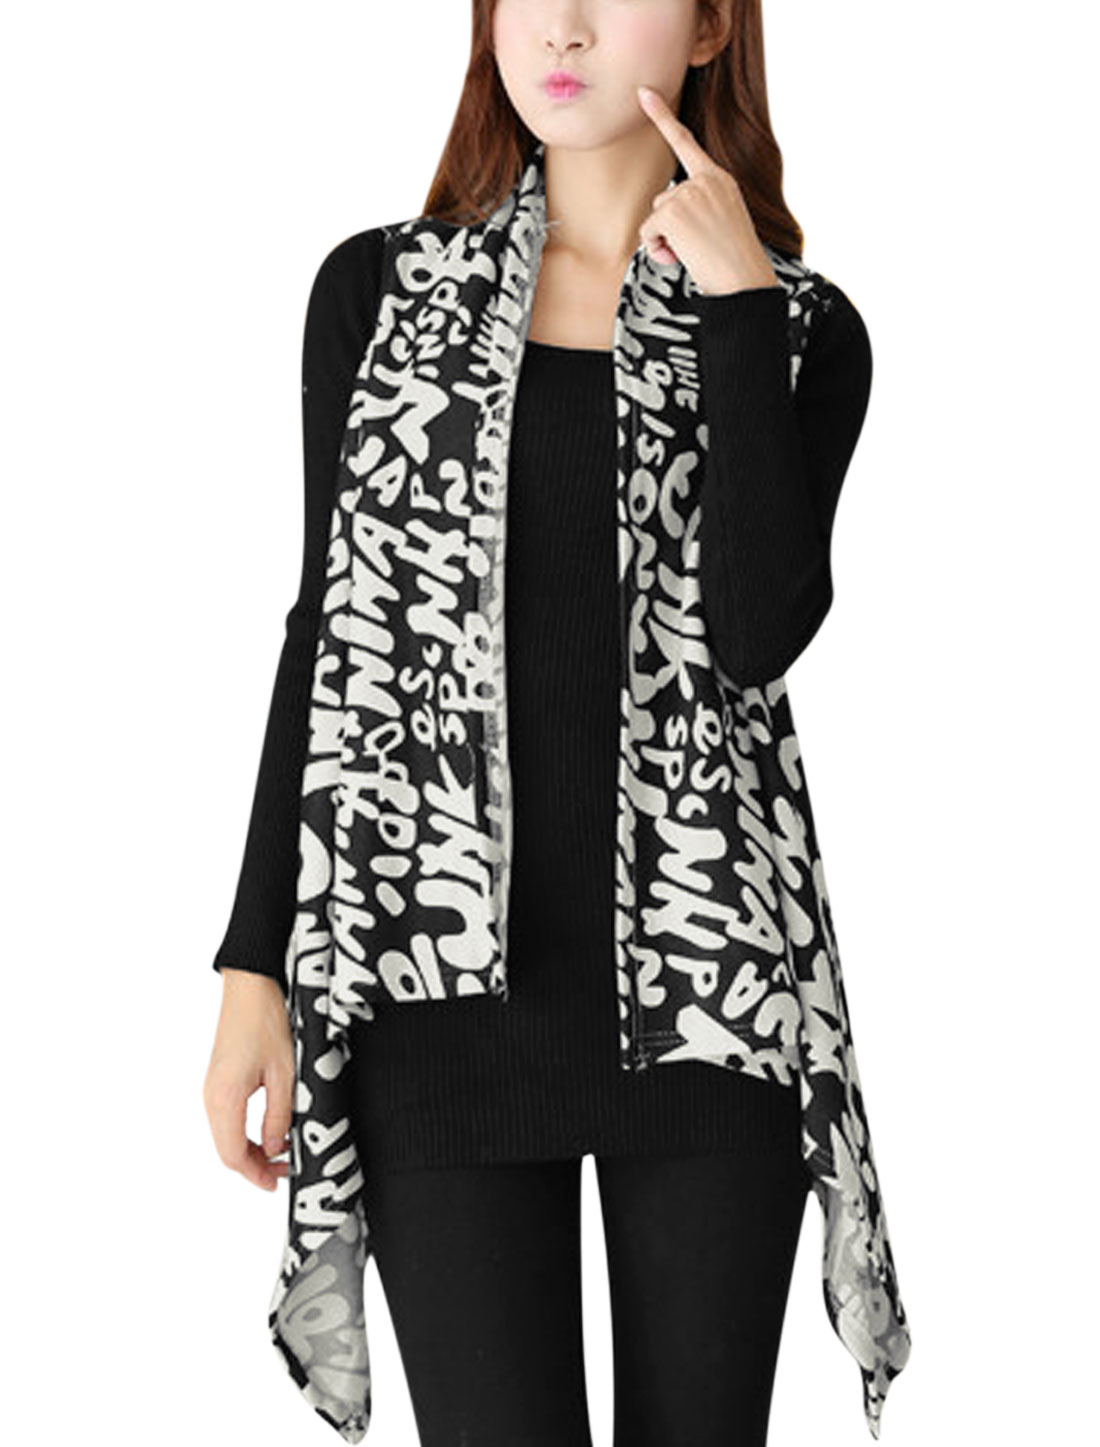 Ladies Letters Pattern Asymmetric Hem Design Knit Vest Black White XS